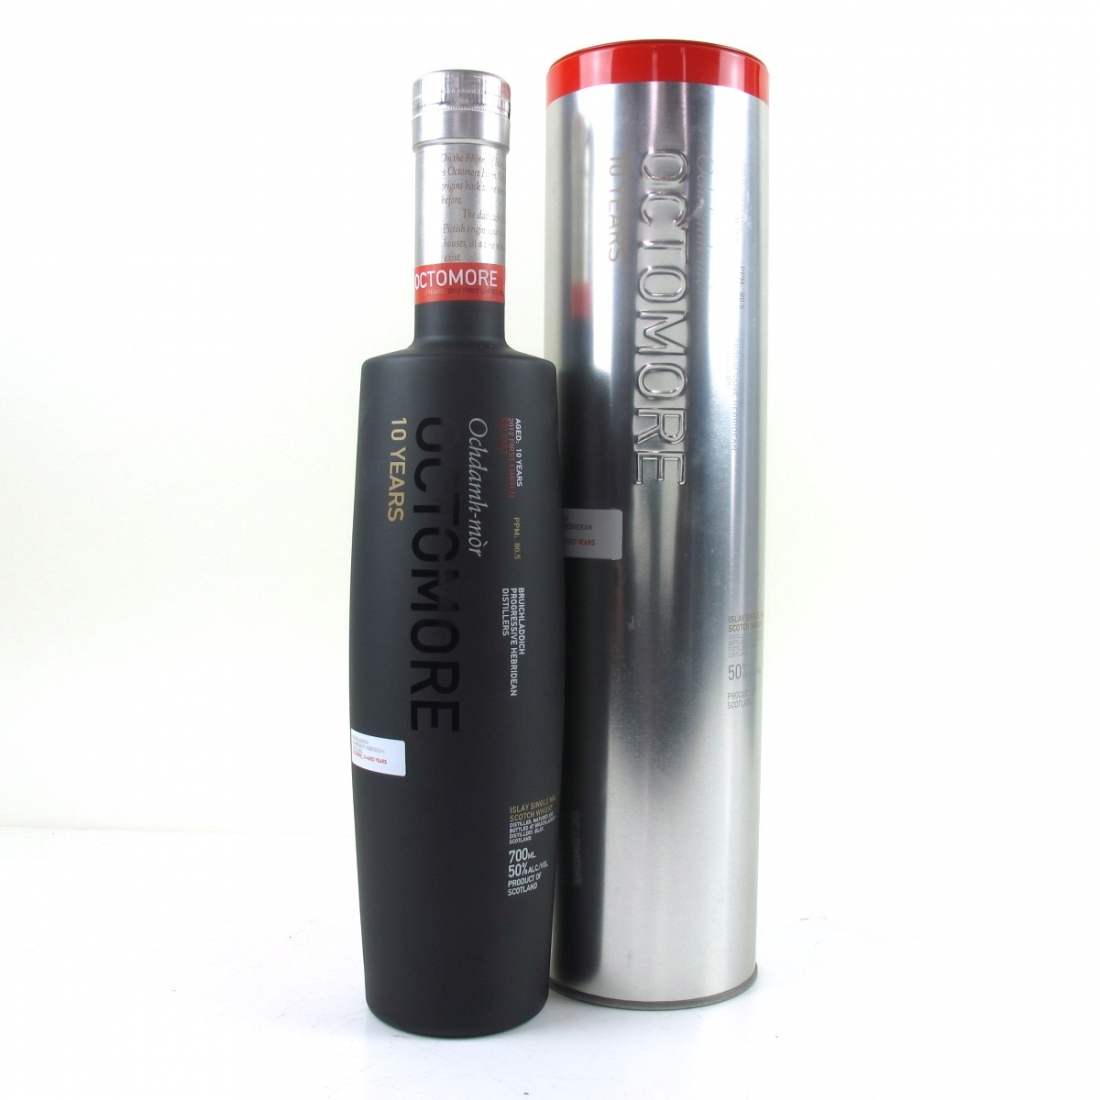 Octomore 10 Year Old First Release